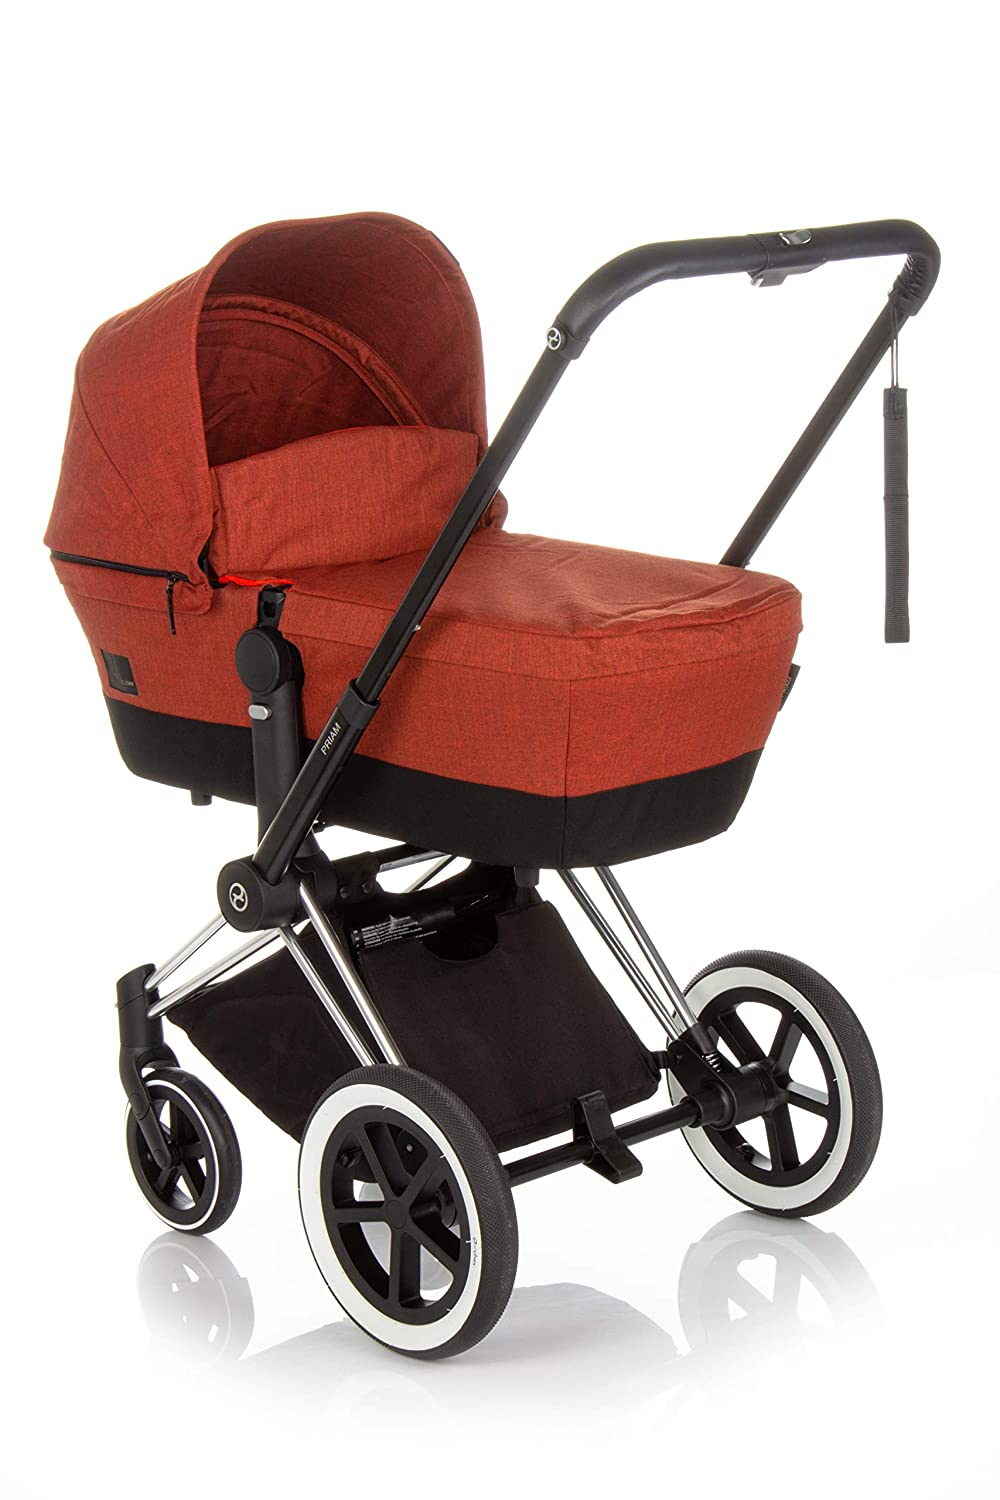 Cochecito combi Cybex Priam Light Seat (Seat Only) Autumn Gold Burnt Red: Amazon.es: Bebé